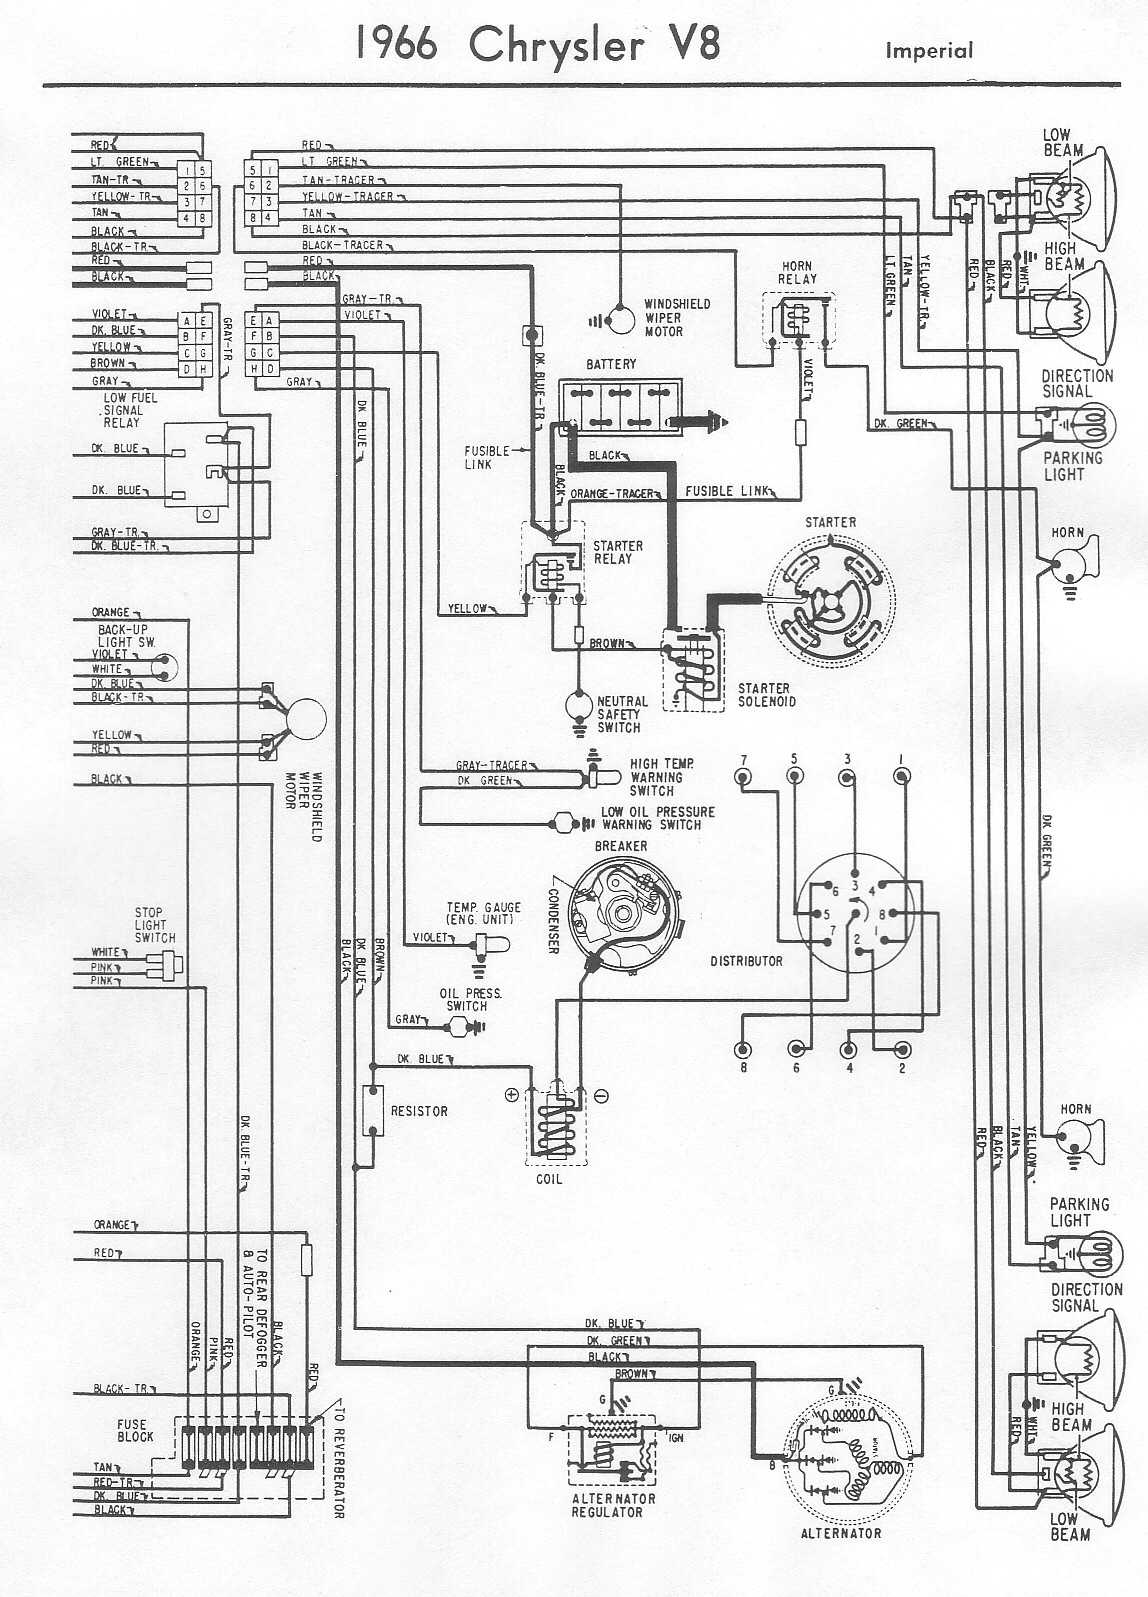 Automotive Engine Wiring Diagram : Free auto wiring diagram